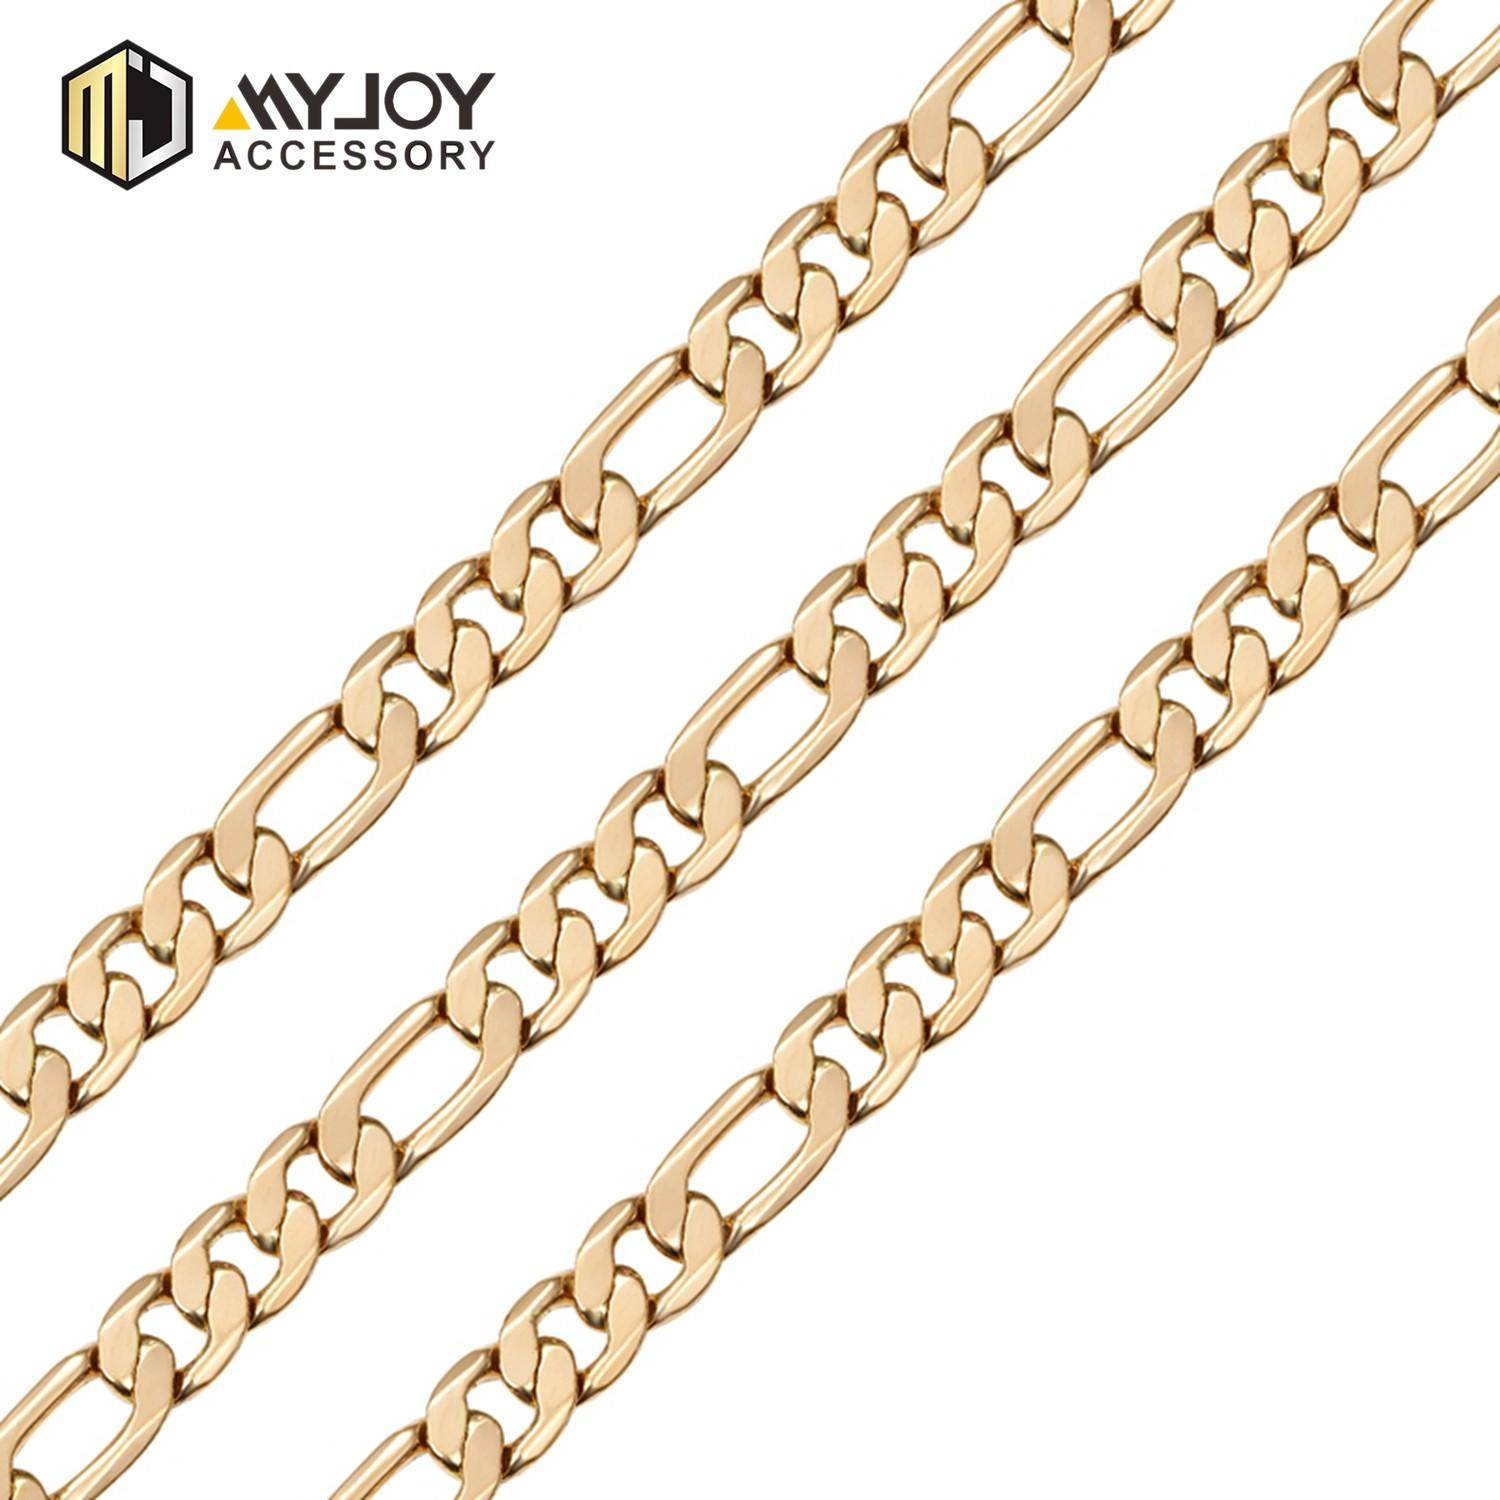 MYJOY cm handbag chain strap Supply for handbag-3